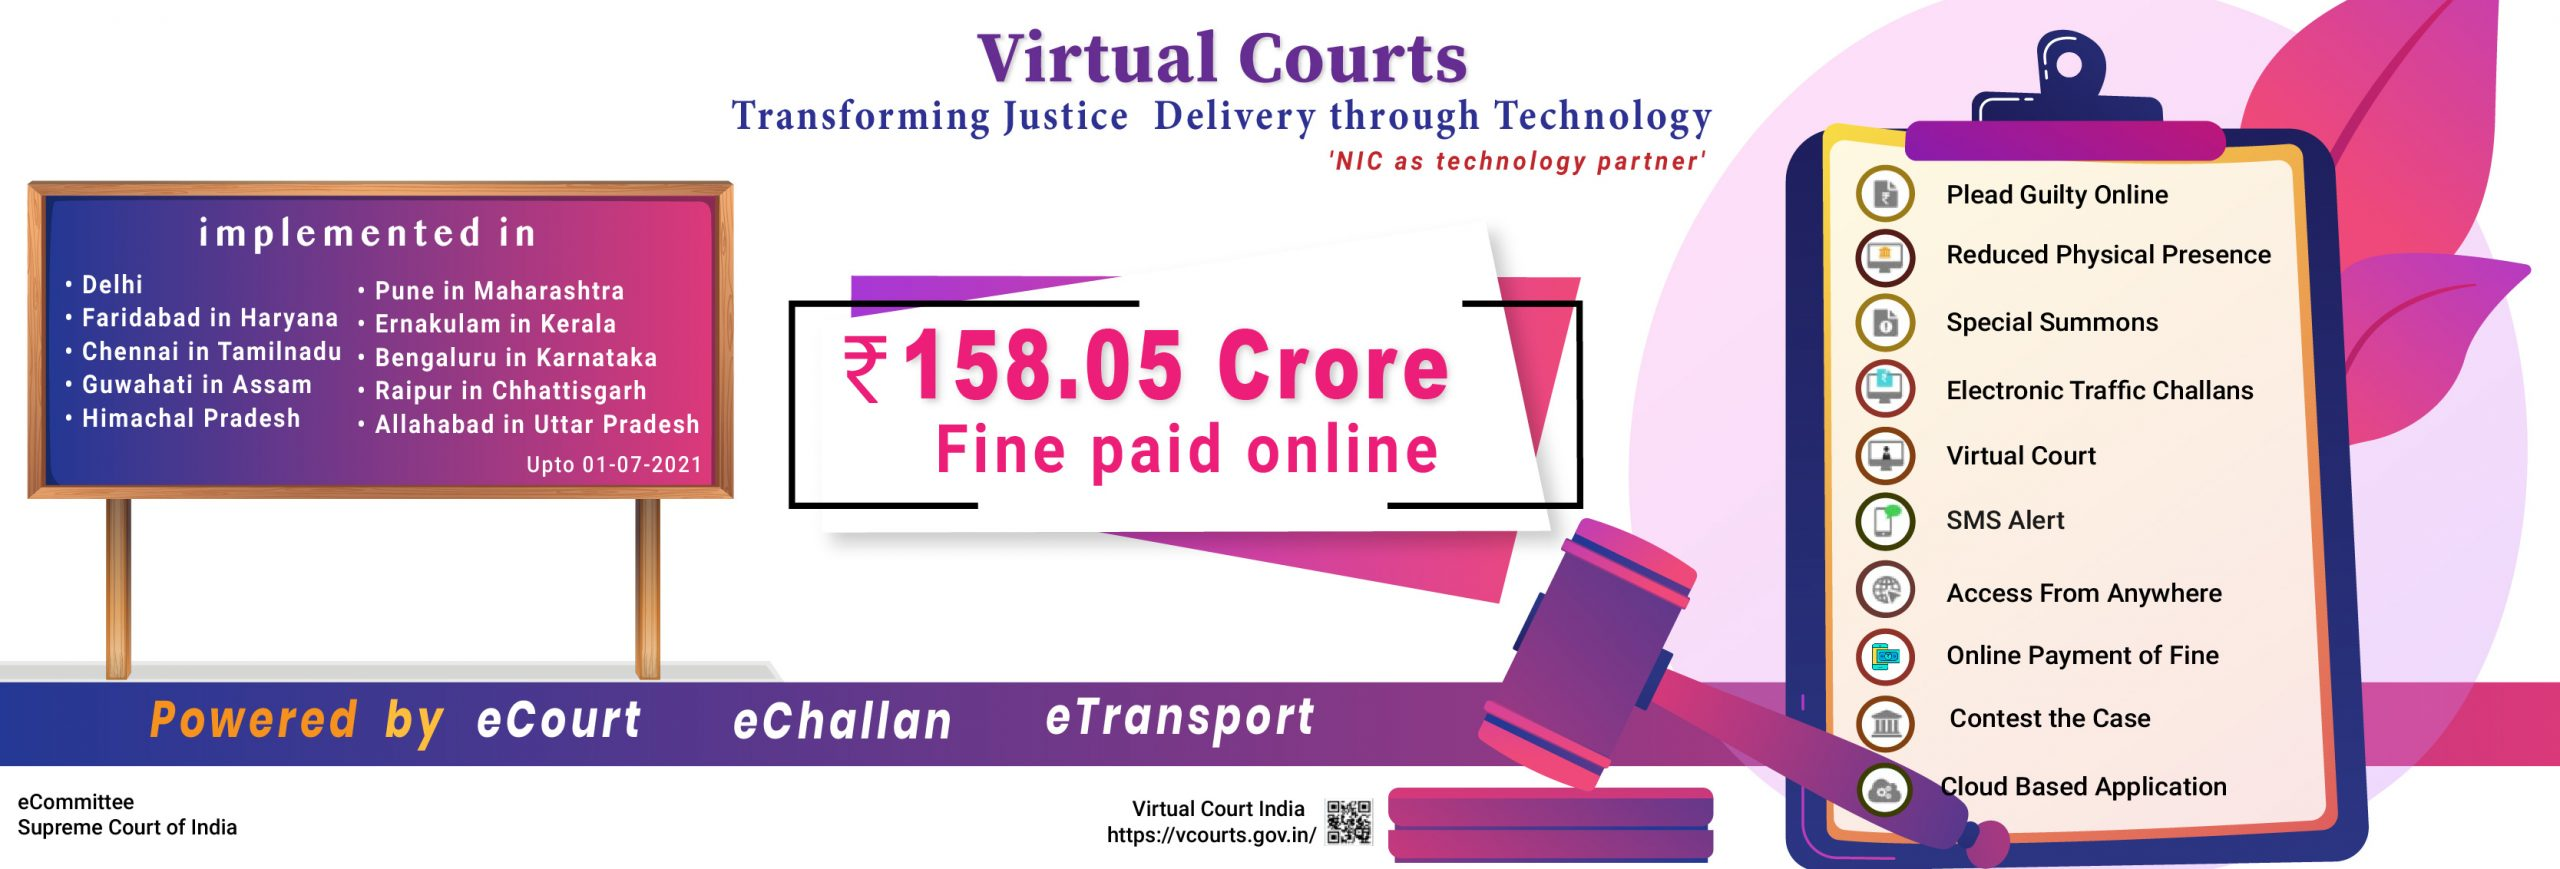 Image of Virtual Courts – Transforming Justice Delivery through Technology